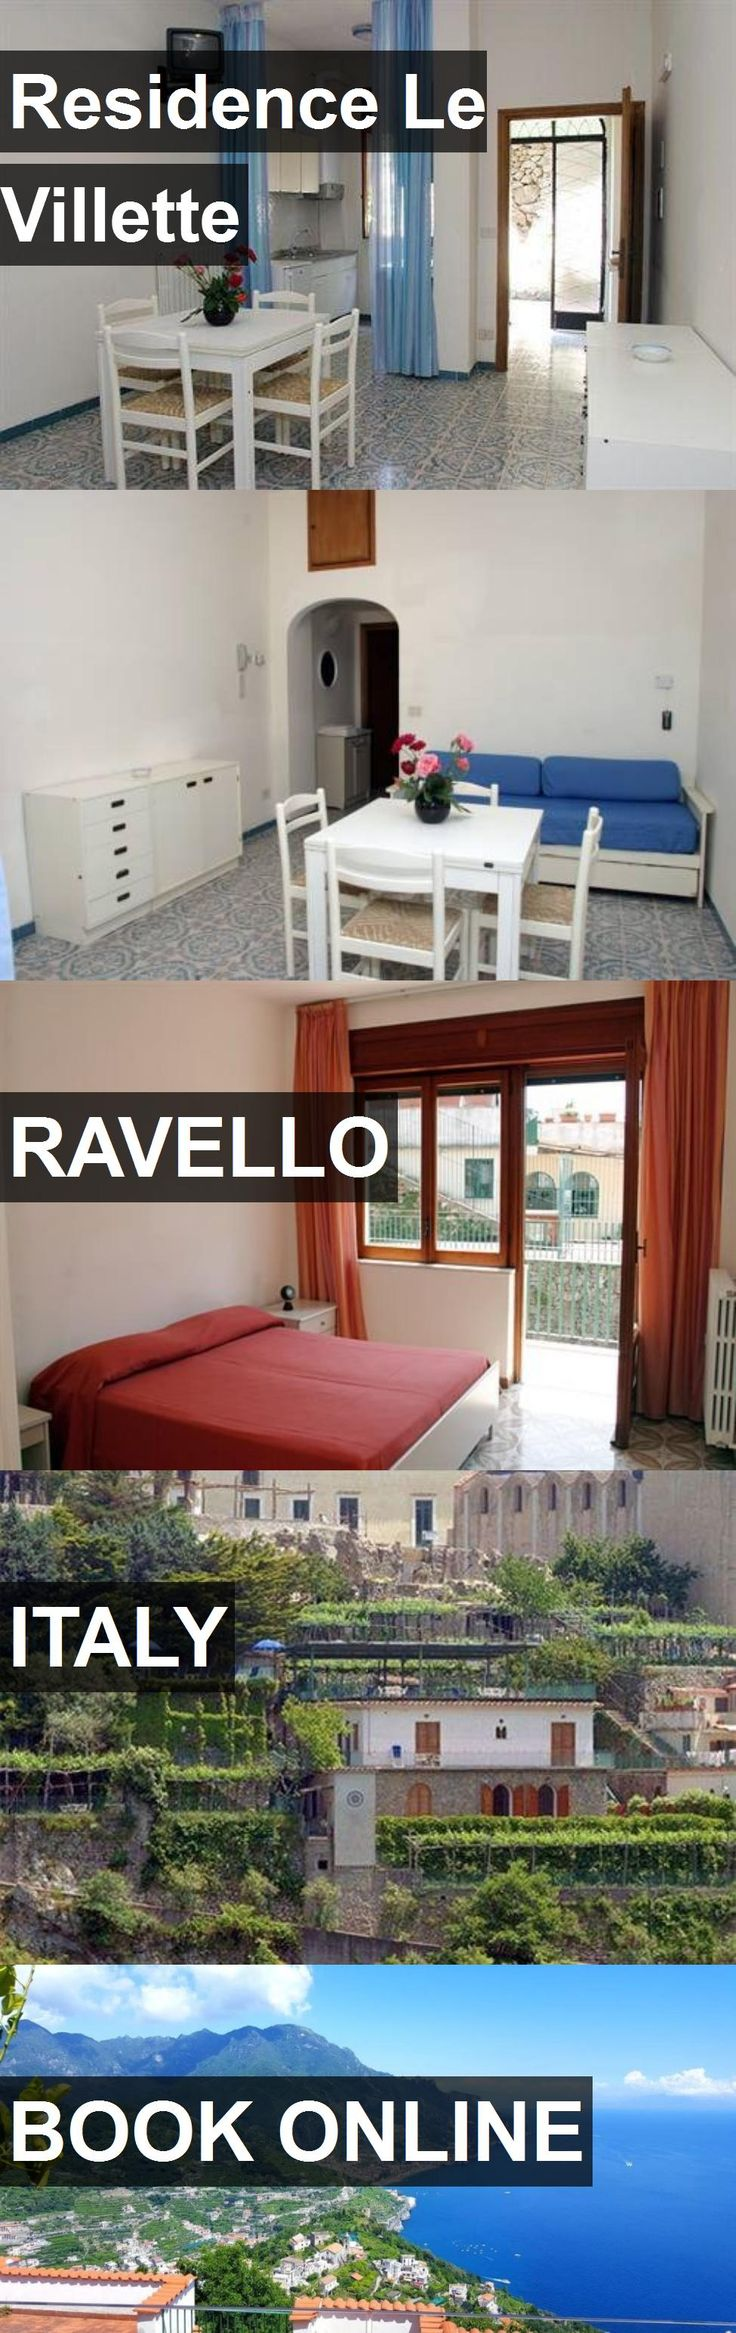 Hotel Residence Le Villette in Ravello, Italy. For more information, photos, reviews and best prices please follow the link. #Italy #Ravello #travel #vacation #hotel